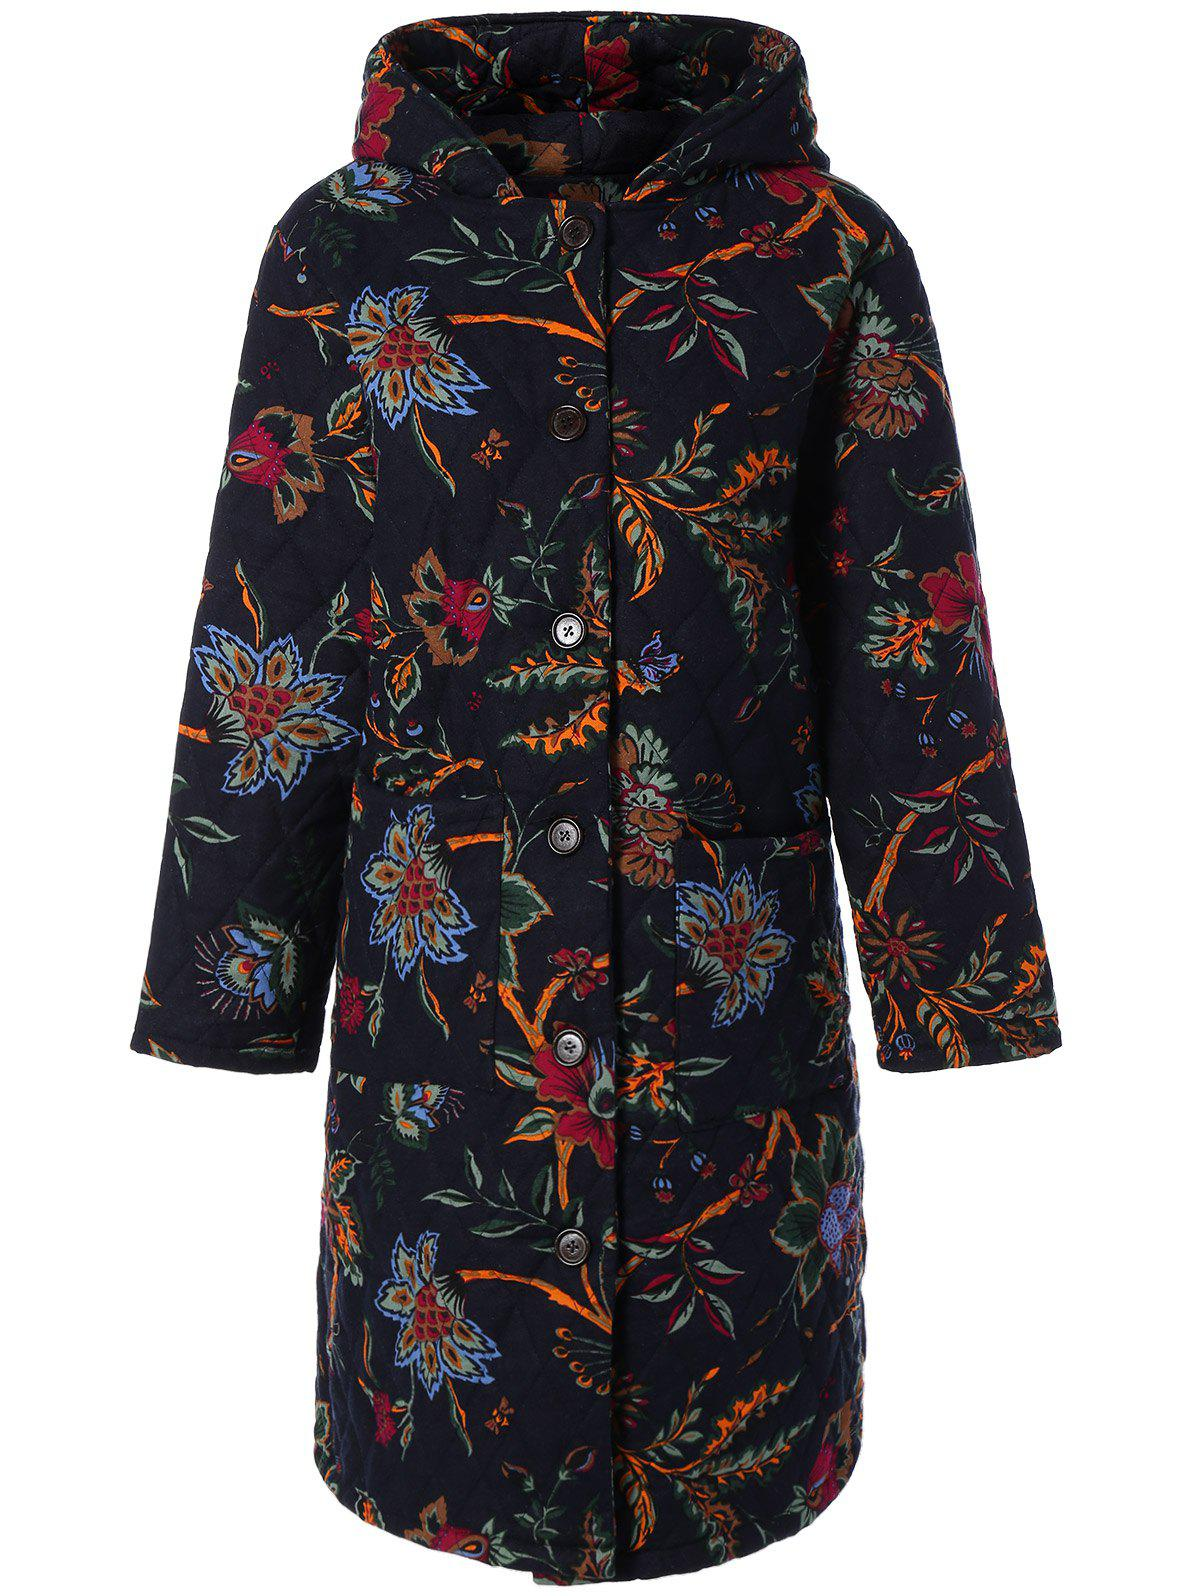 Hot Hooded Floral Print Plus Size Coat